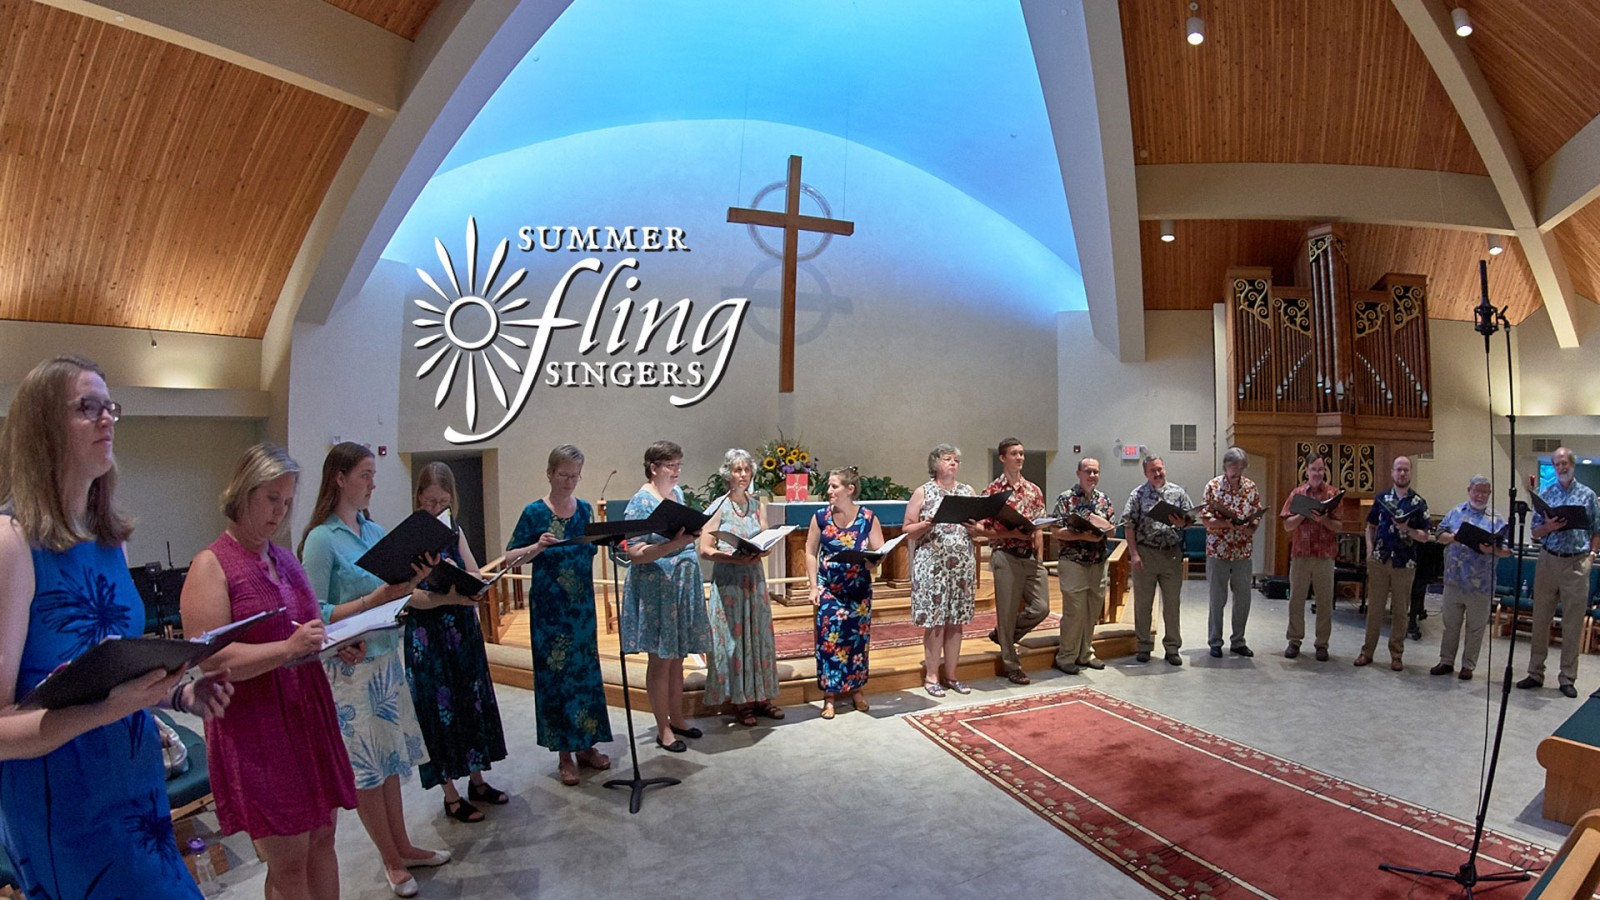 Summer Fling Singers. Summer Fling 2017 at St. Margaret's. Photography by Philip D. Lanum.